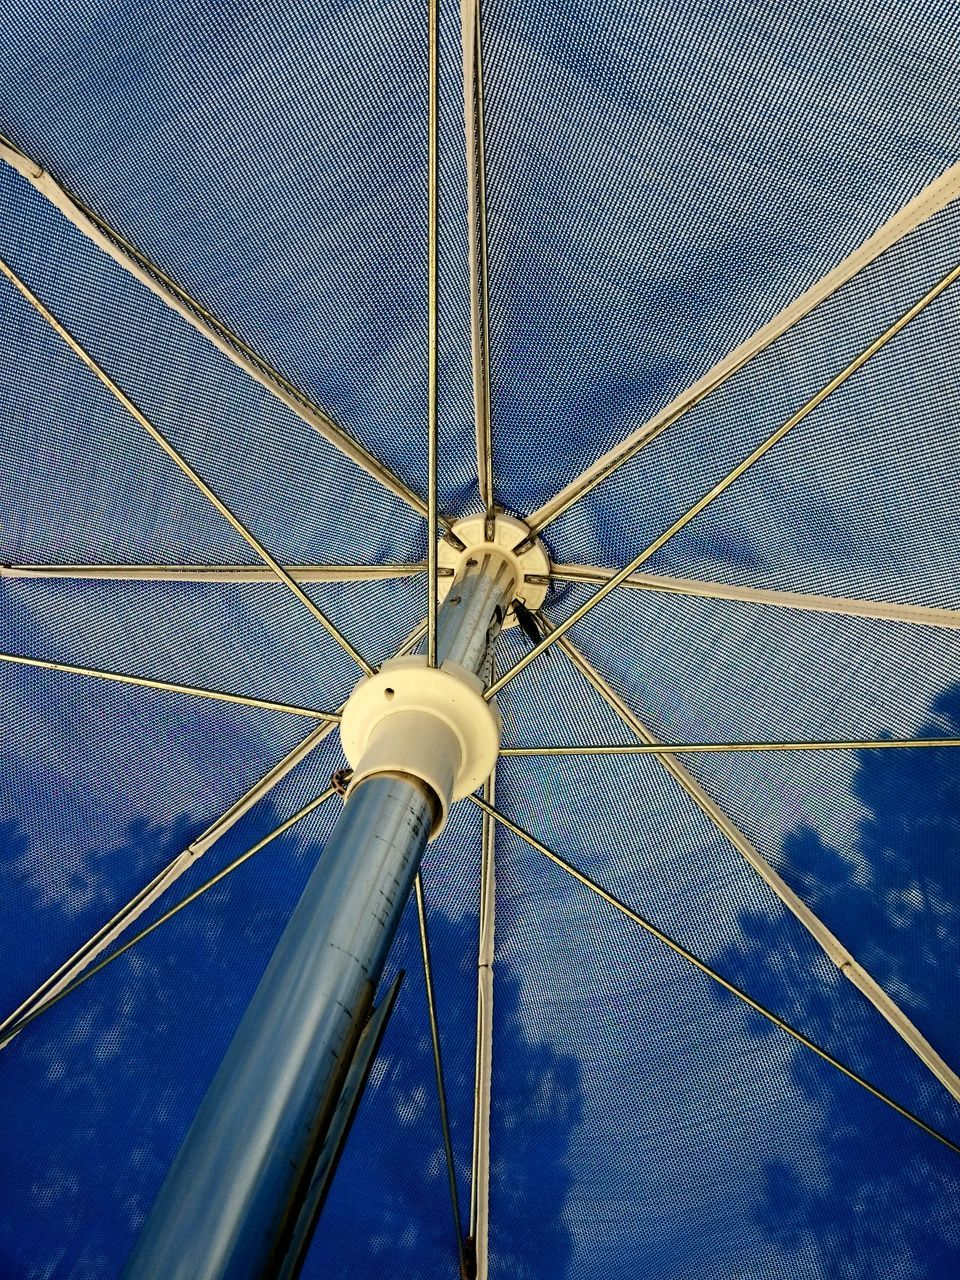 blue, no people, low angle view, sky, transportation, nature, day, mode of transportation, cloud - sky, technology, metal, rope, cable, outdoors, close-up, connection, security, fuel and power generation, architecture, nautical vessel, wheel, power supply, sailboat, directly below, silver colored, spoke